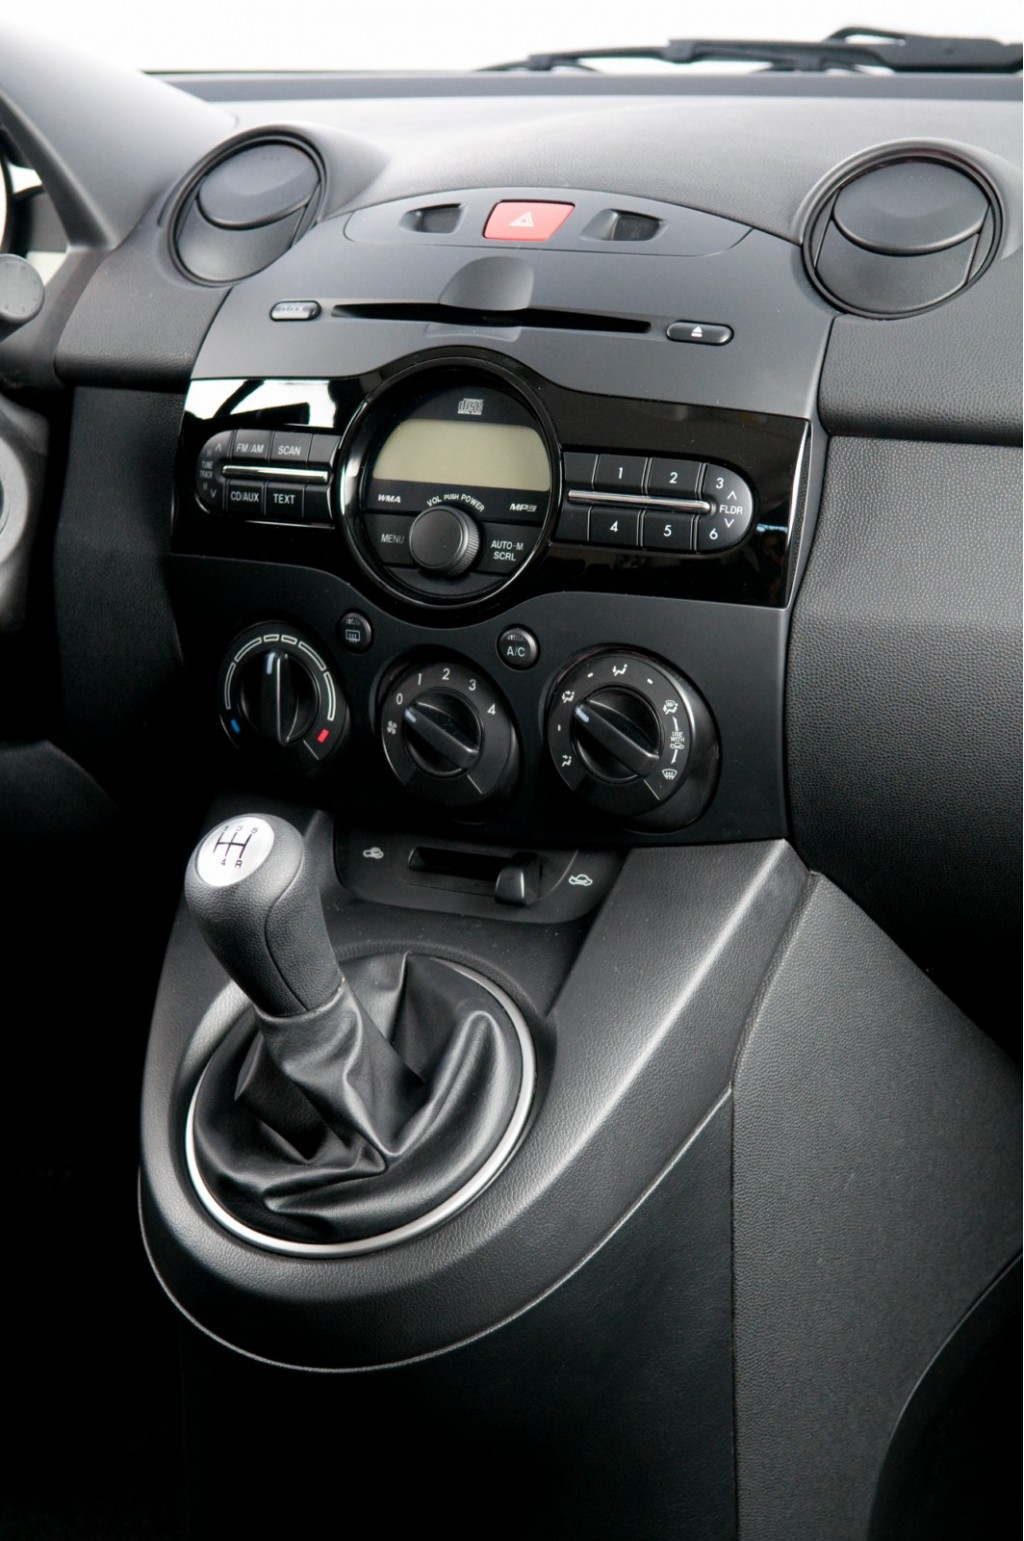 2011 mazda2 interior revealed still not as snazzy as ford fiesta. Black Bedroom Furniture Sets. Home Design Ideas